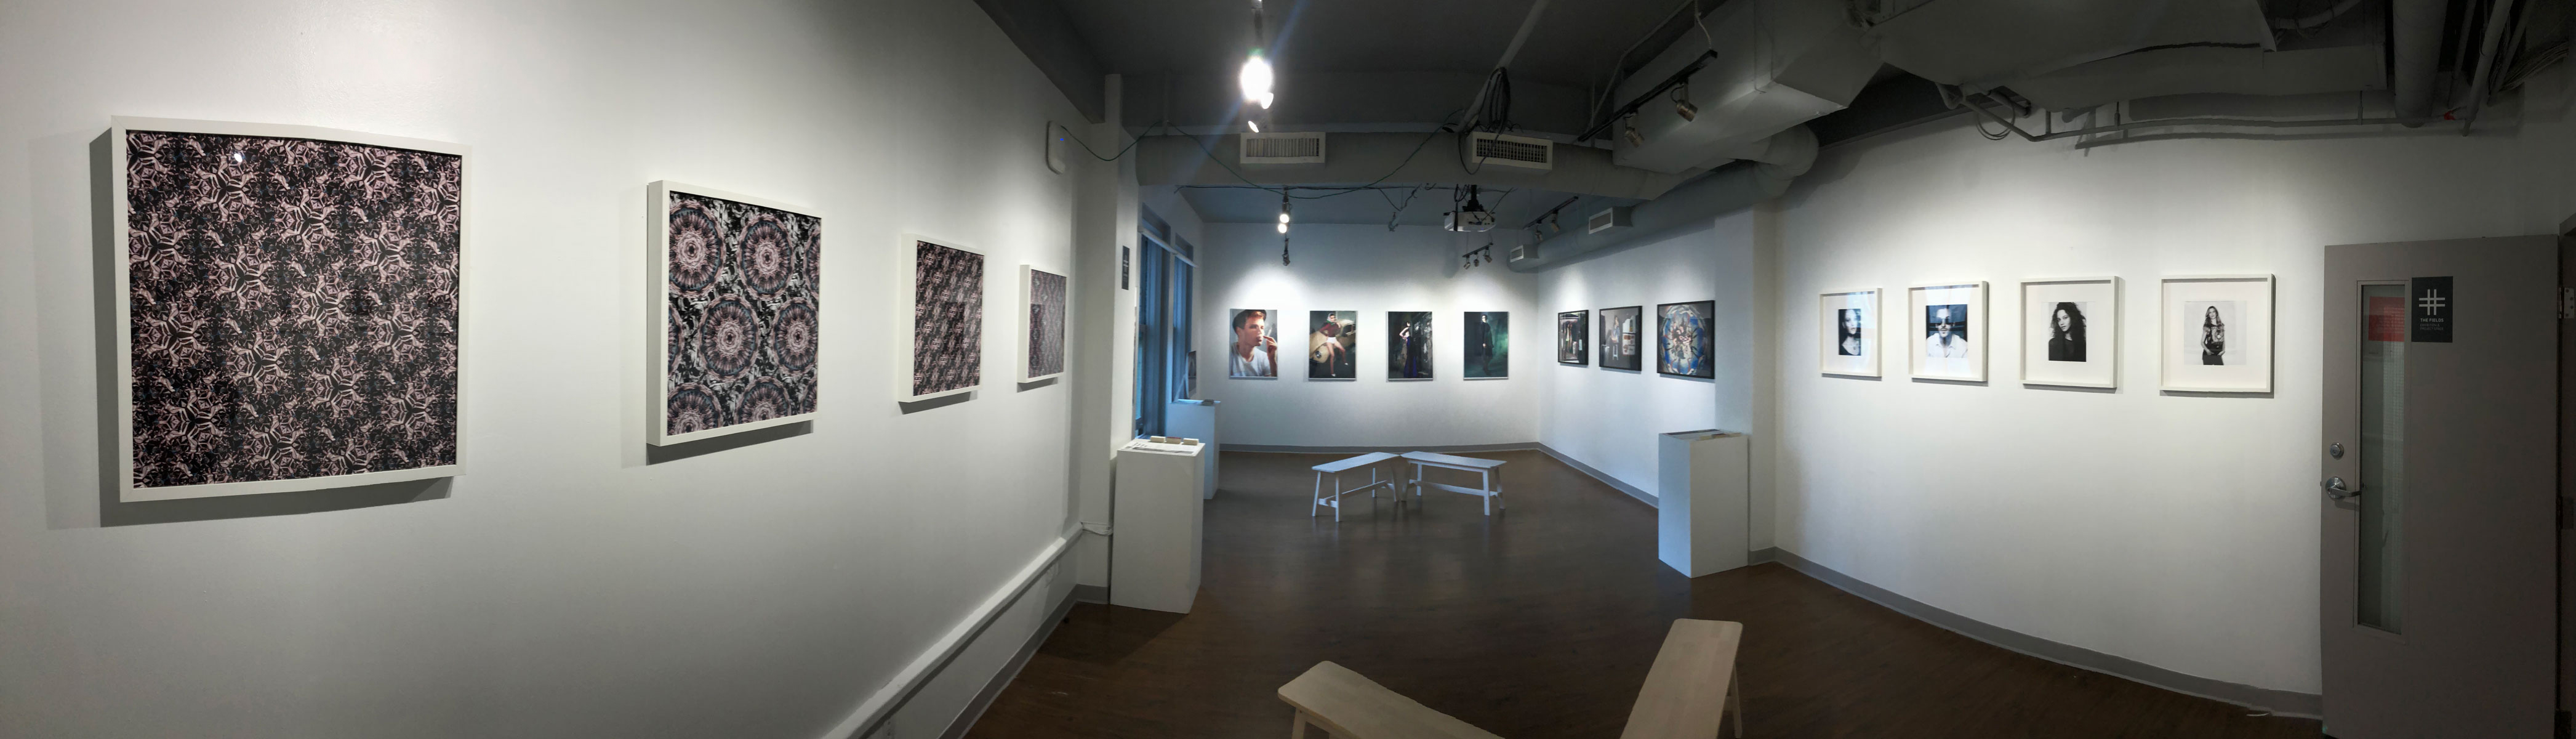 Open gallery space— Gustavo Chams' Meandering, Inflections and Angry Camels photography exhibition in Vancouver